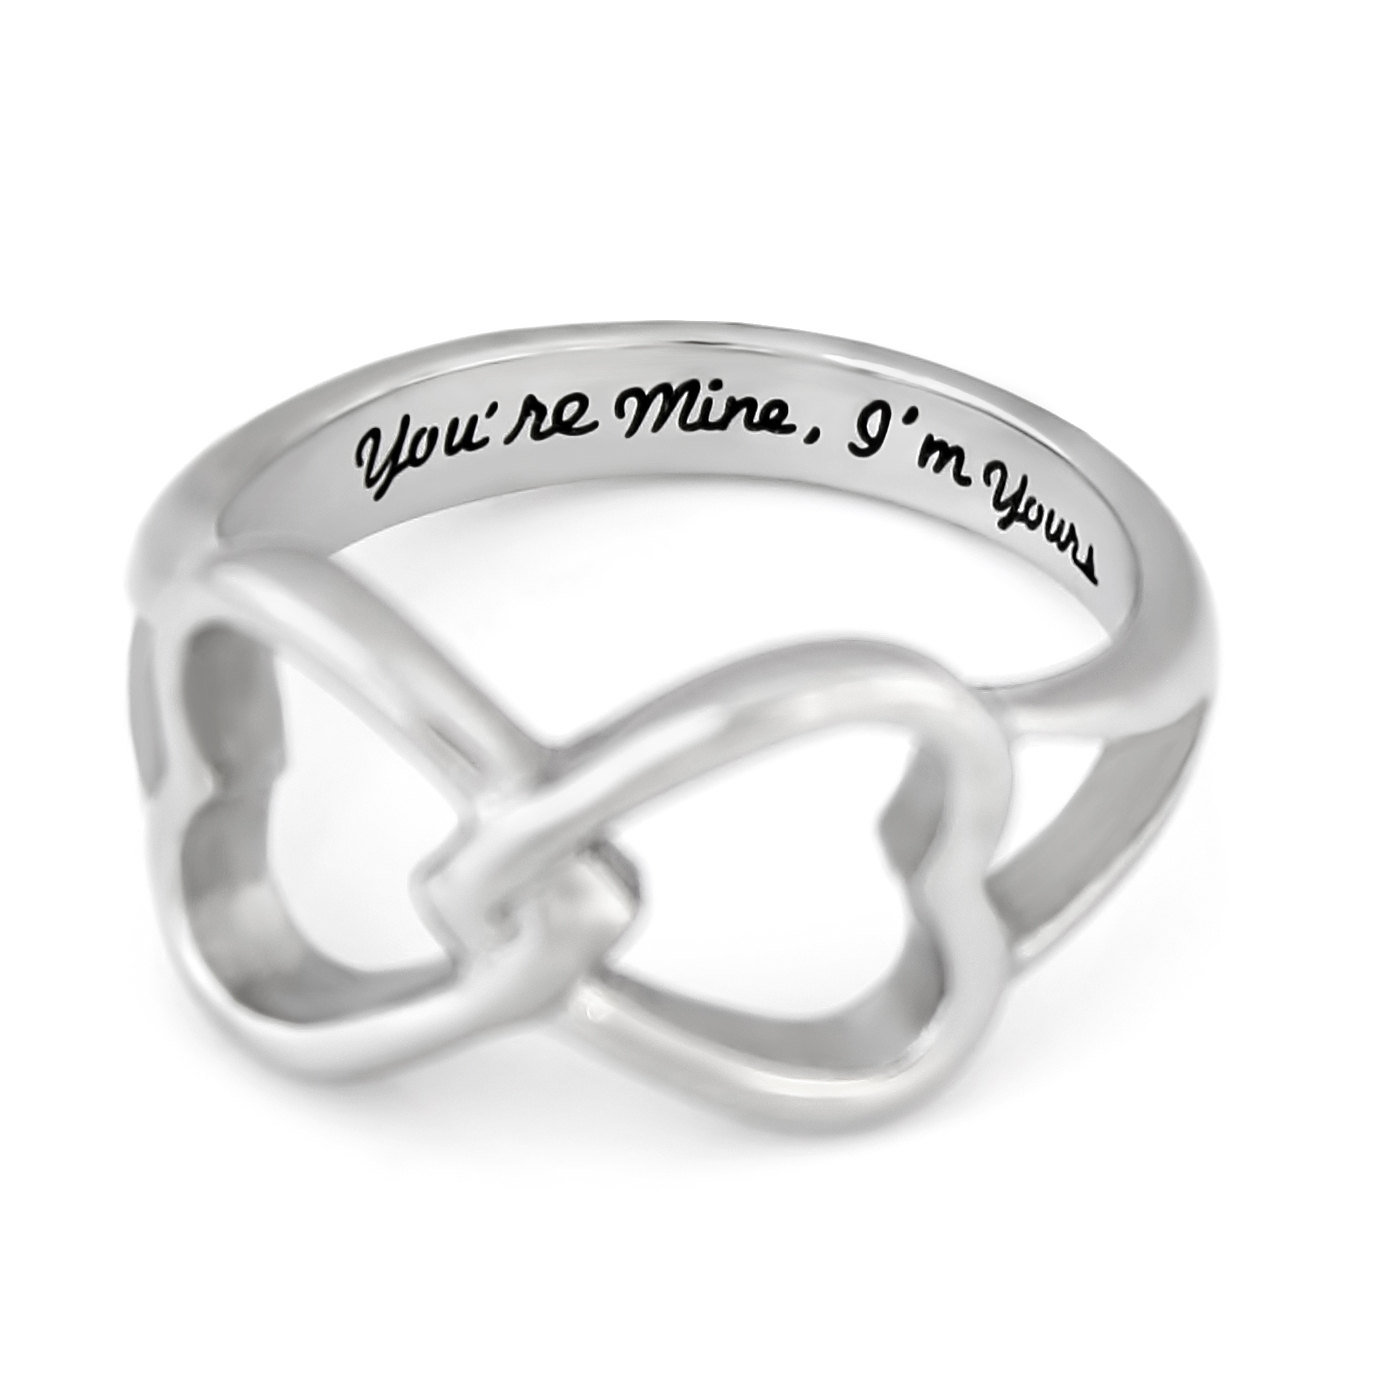 tzaro jewelry hearts infinity ring promise ring